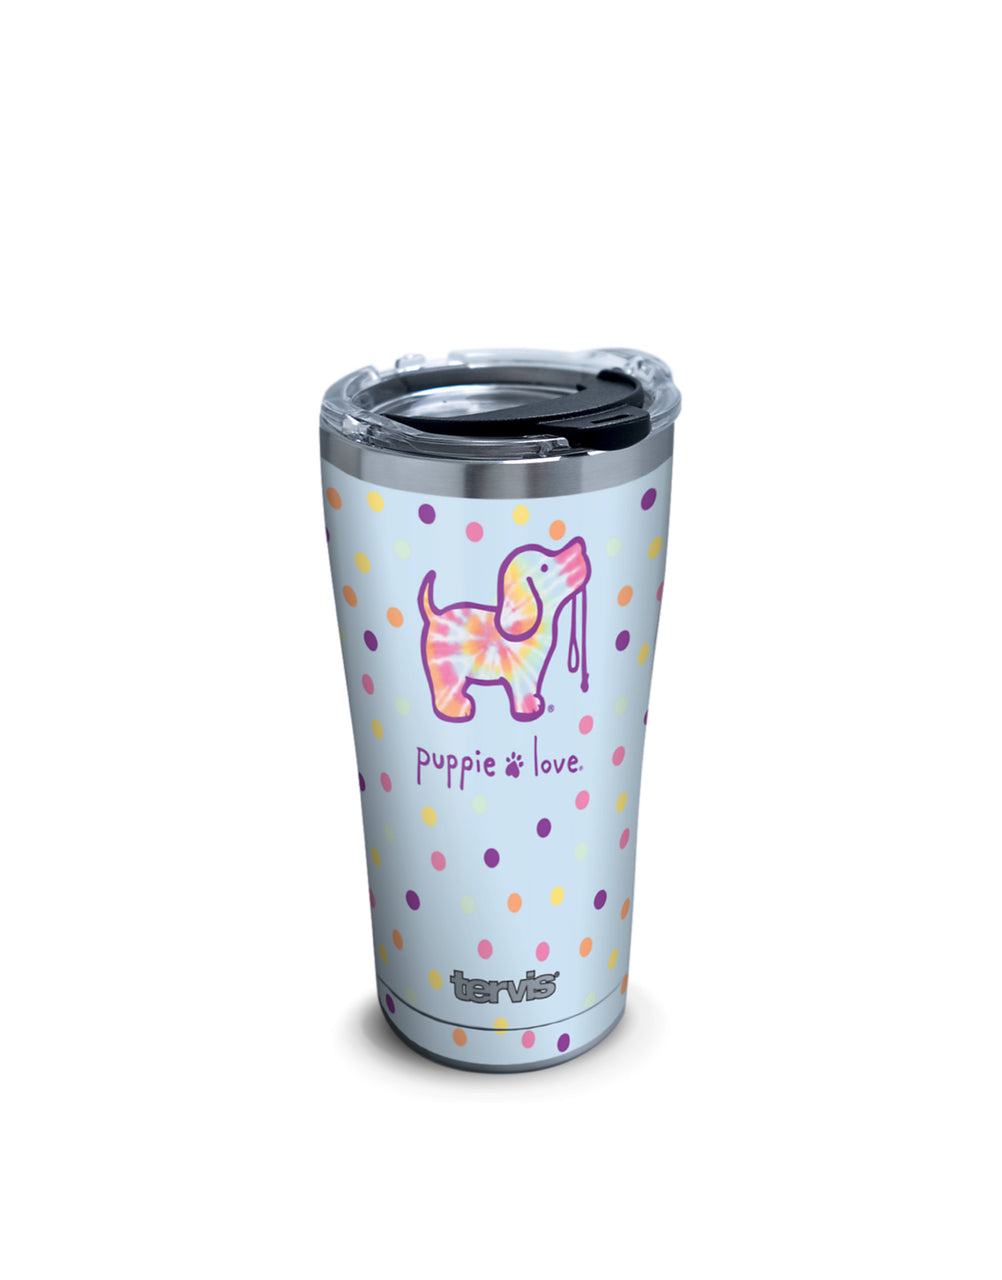 TIE DYE DOT 20oz STAINLESS STEEL TUMBLER - Puppie Love